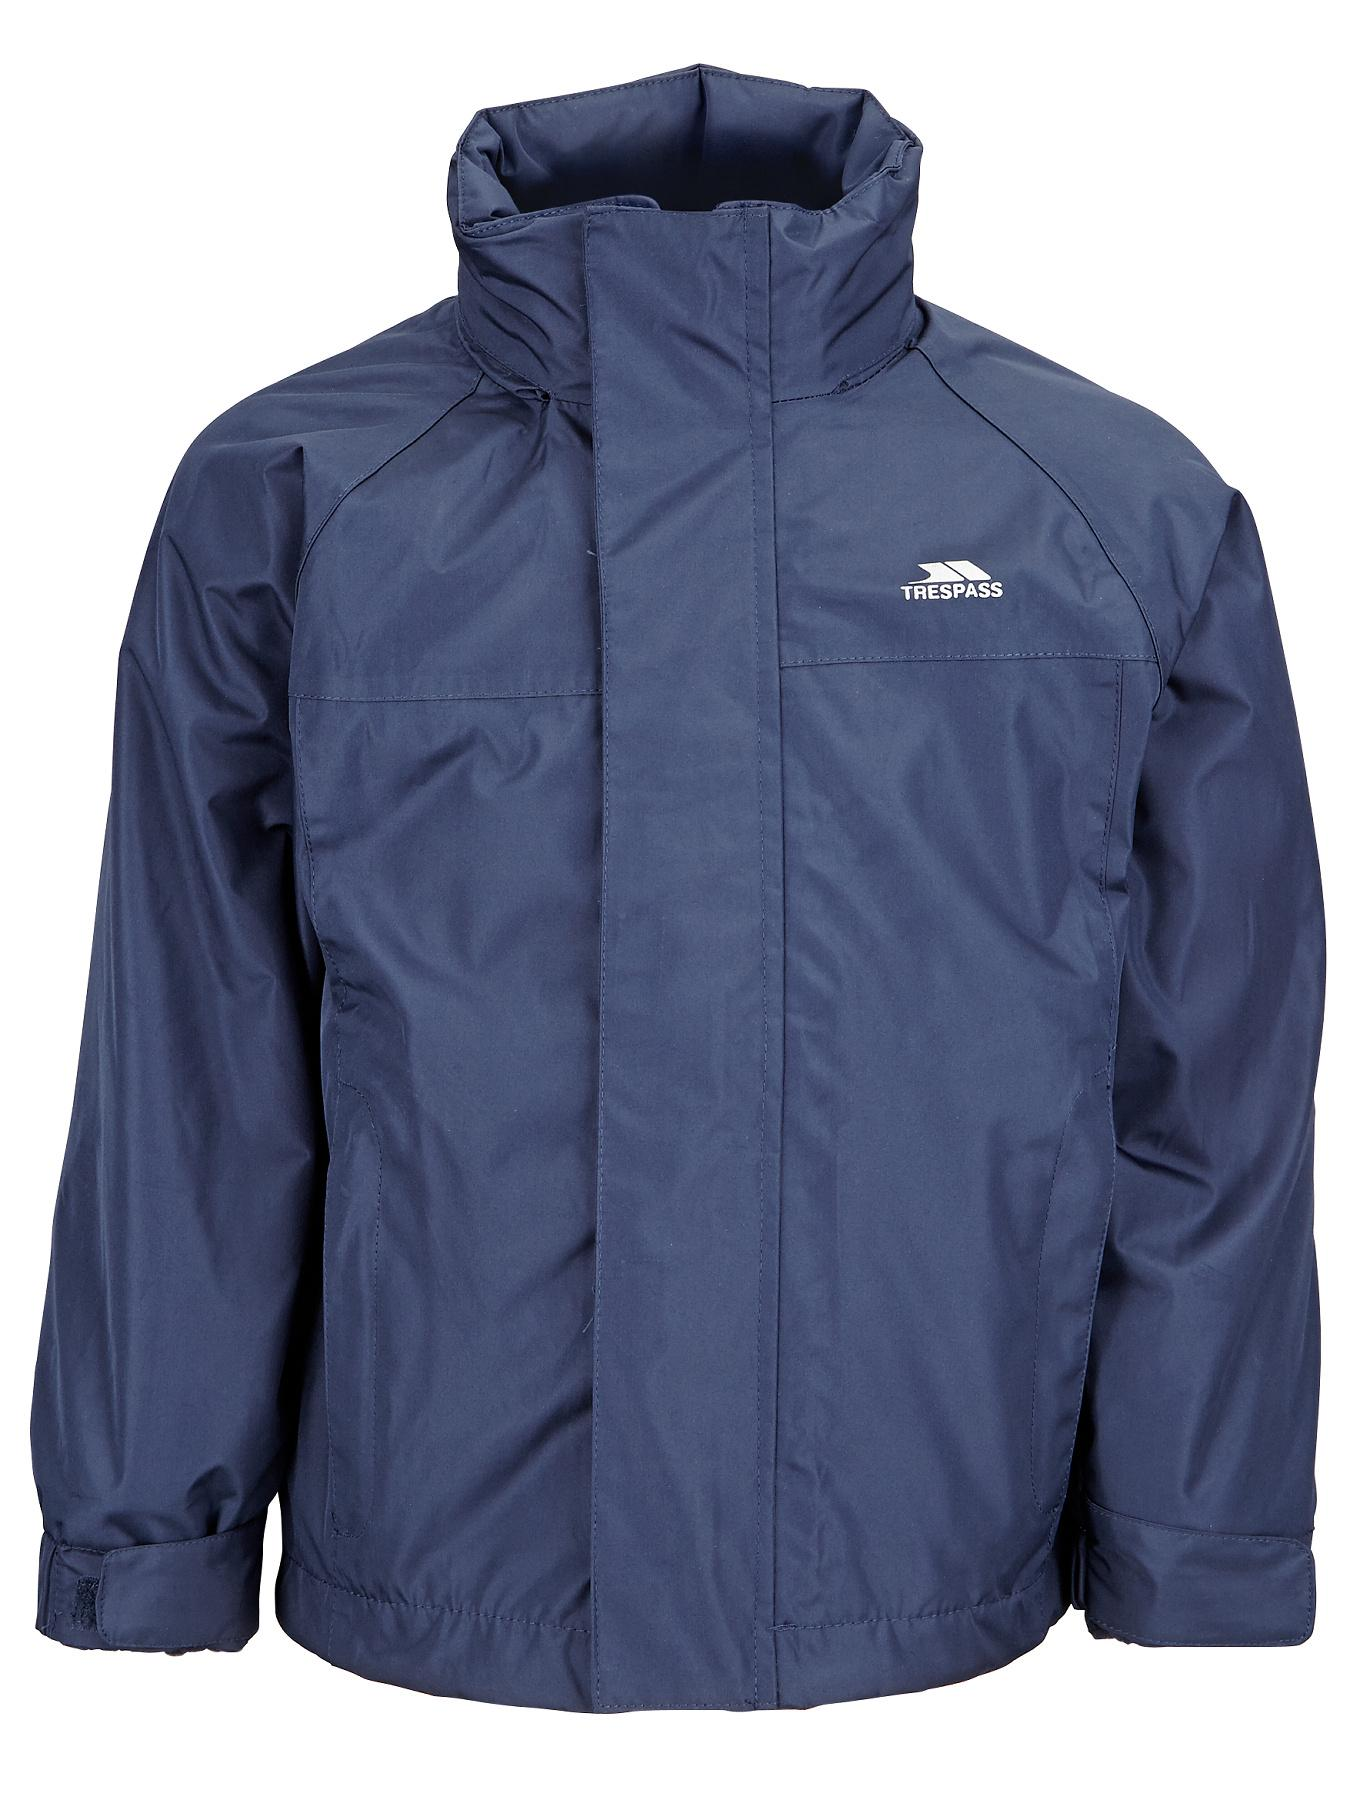 Boys 3-in-1 Waterproof Jacket, Navy